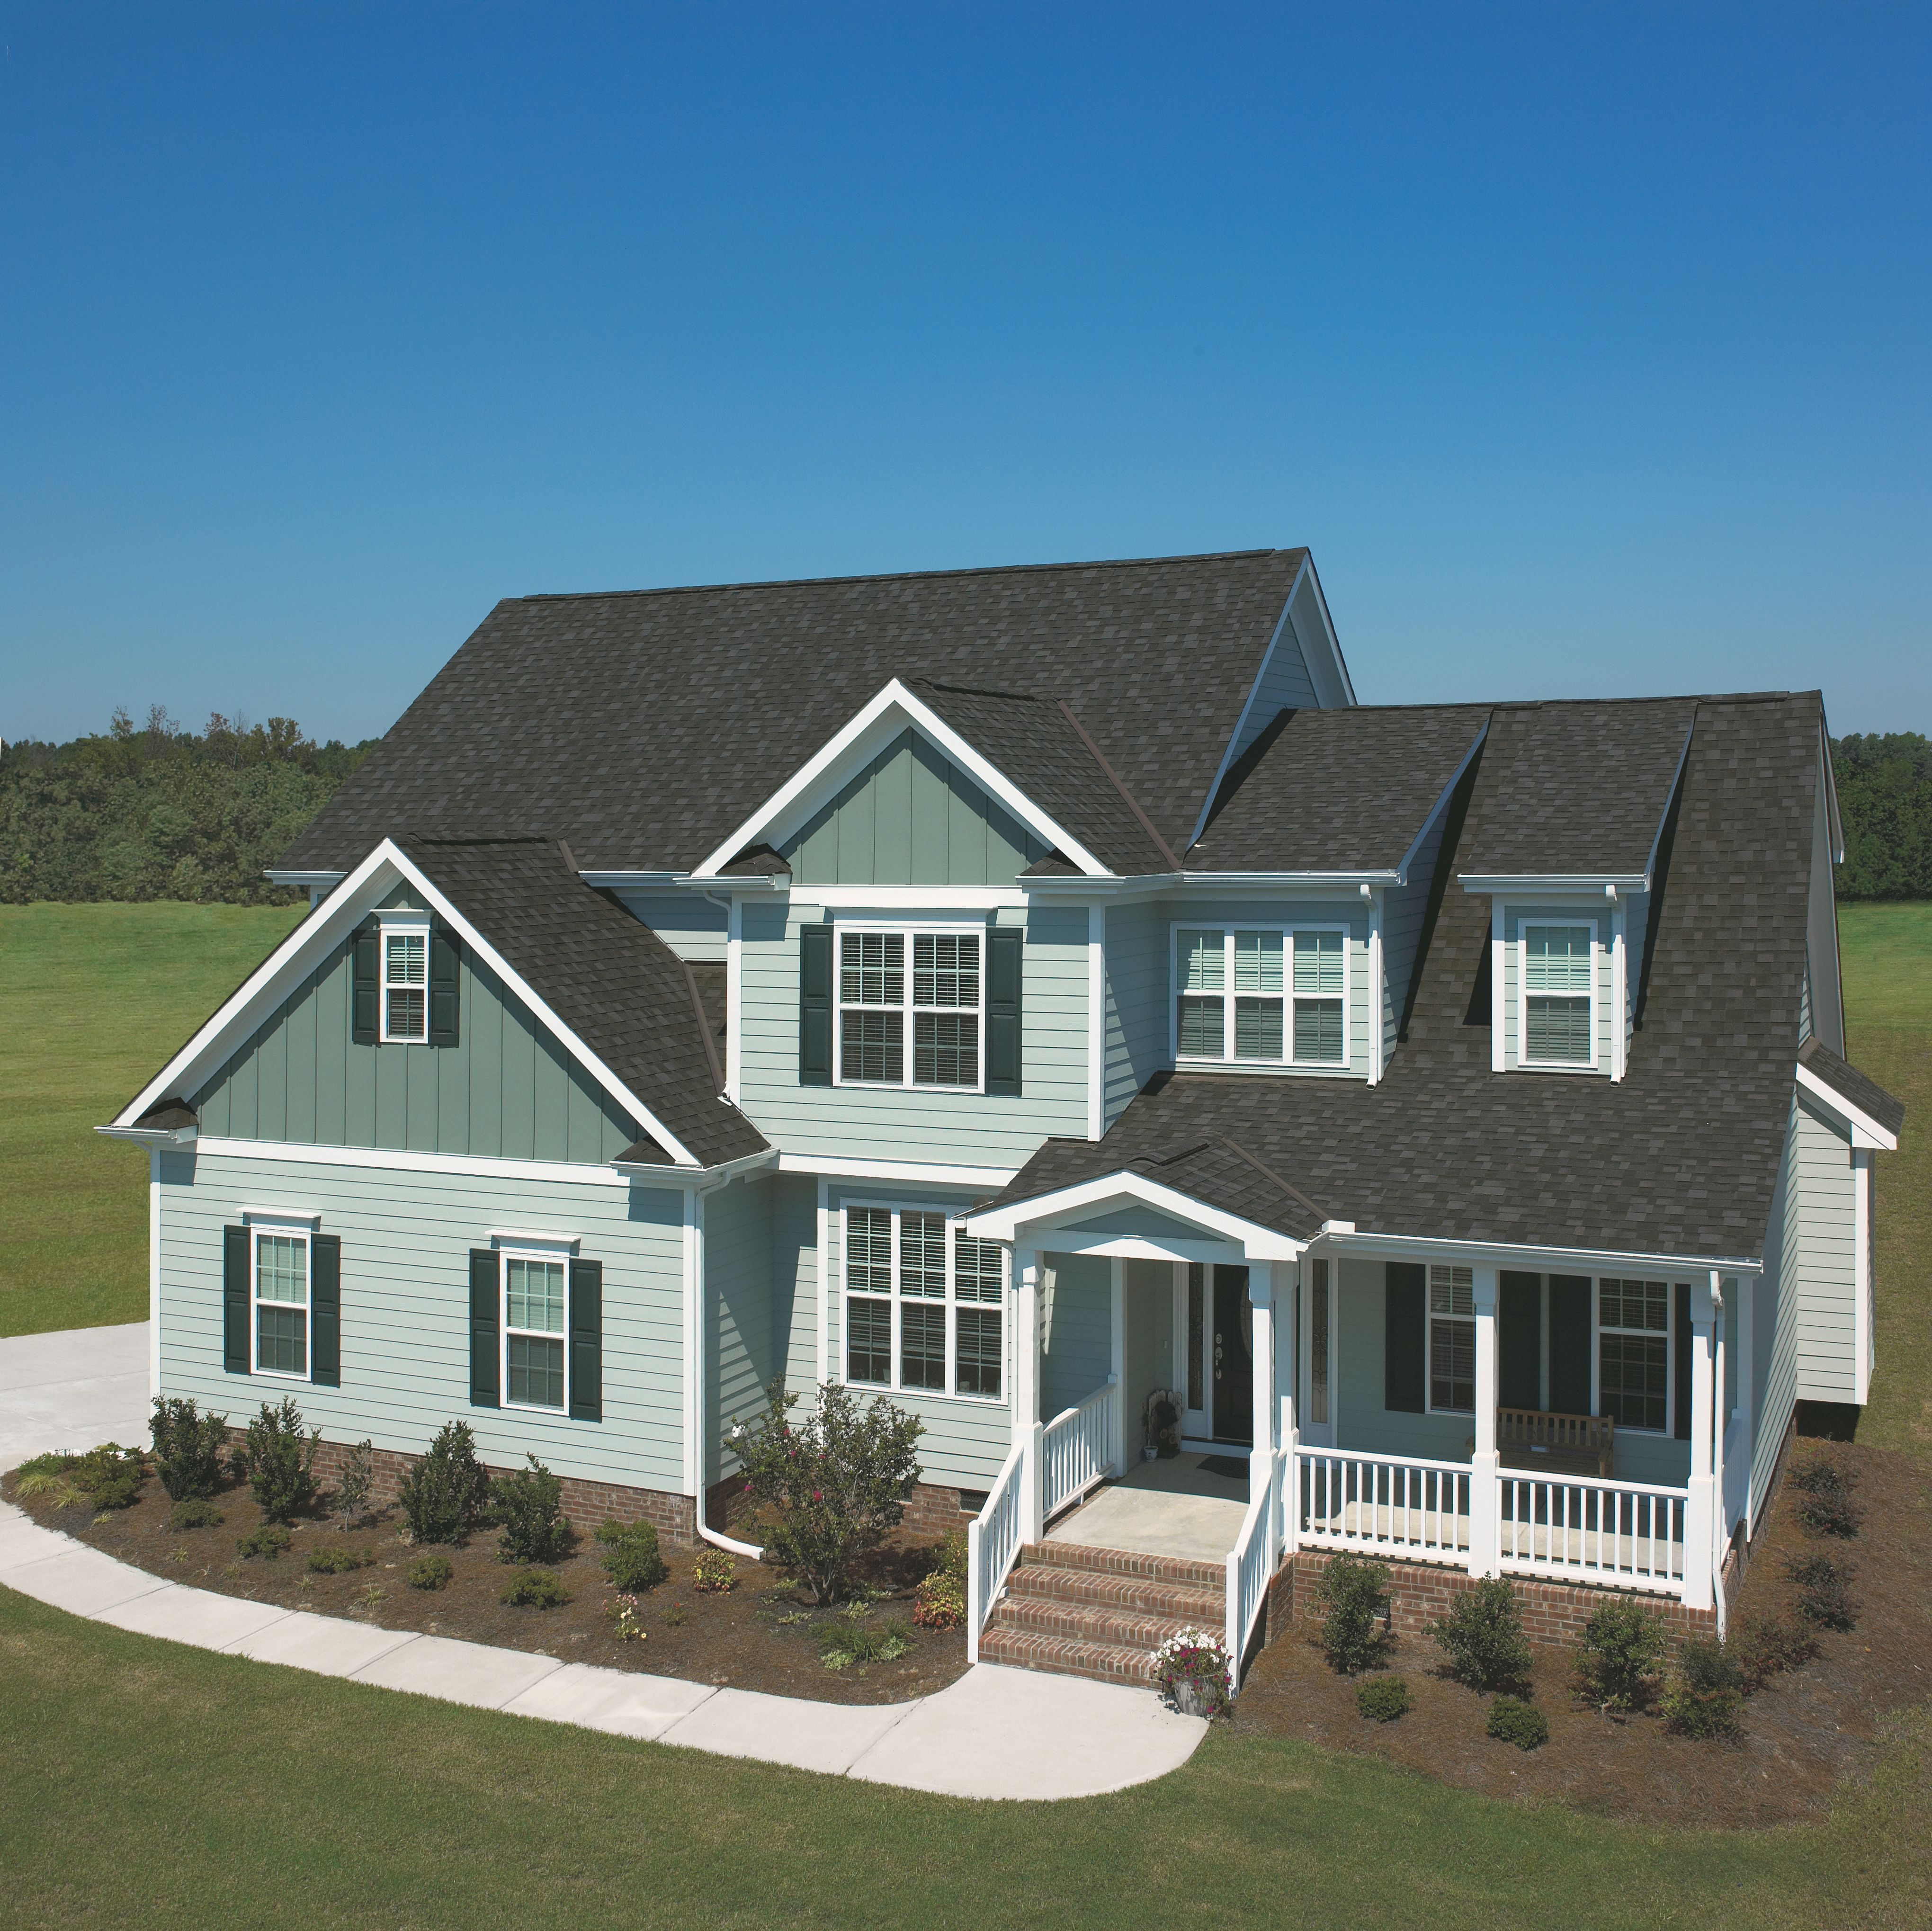 Cambridge Architectural Roofing Shingles Laminated Roof Shingles Iko In 2020 Roof Shingle Colors Roof Shingles Shingle Colors